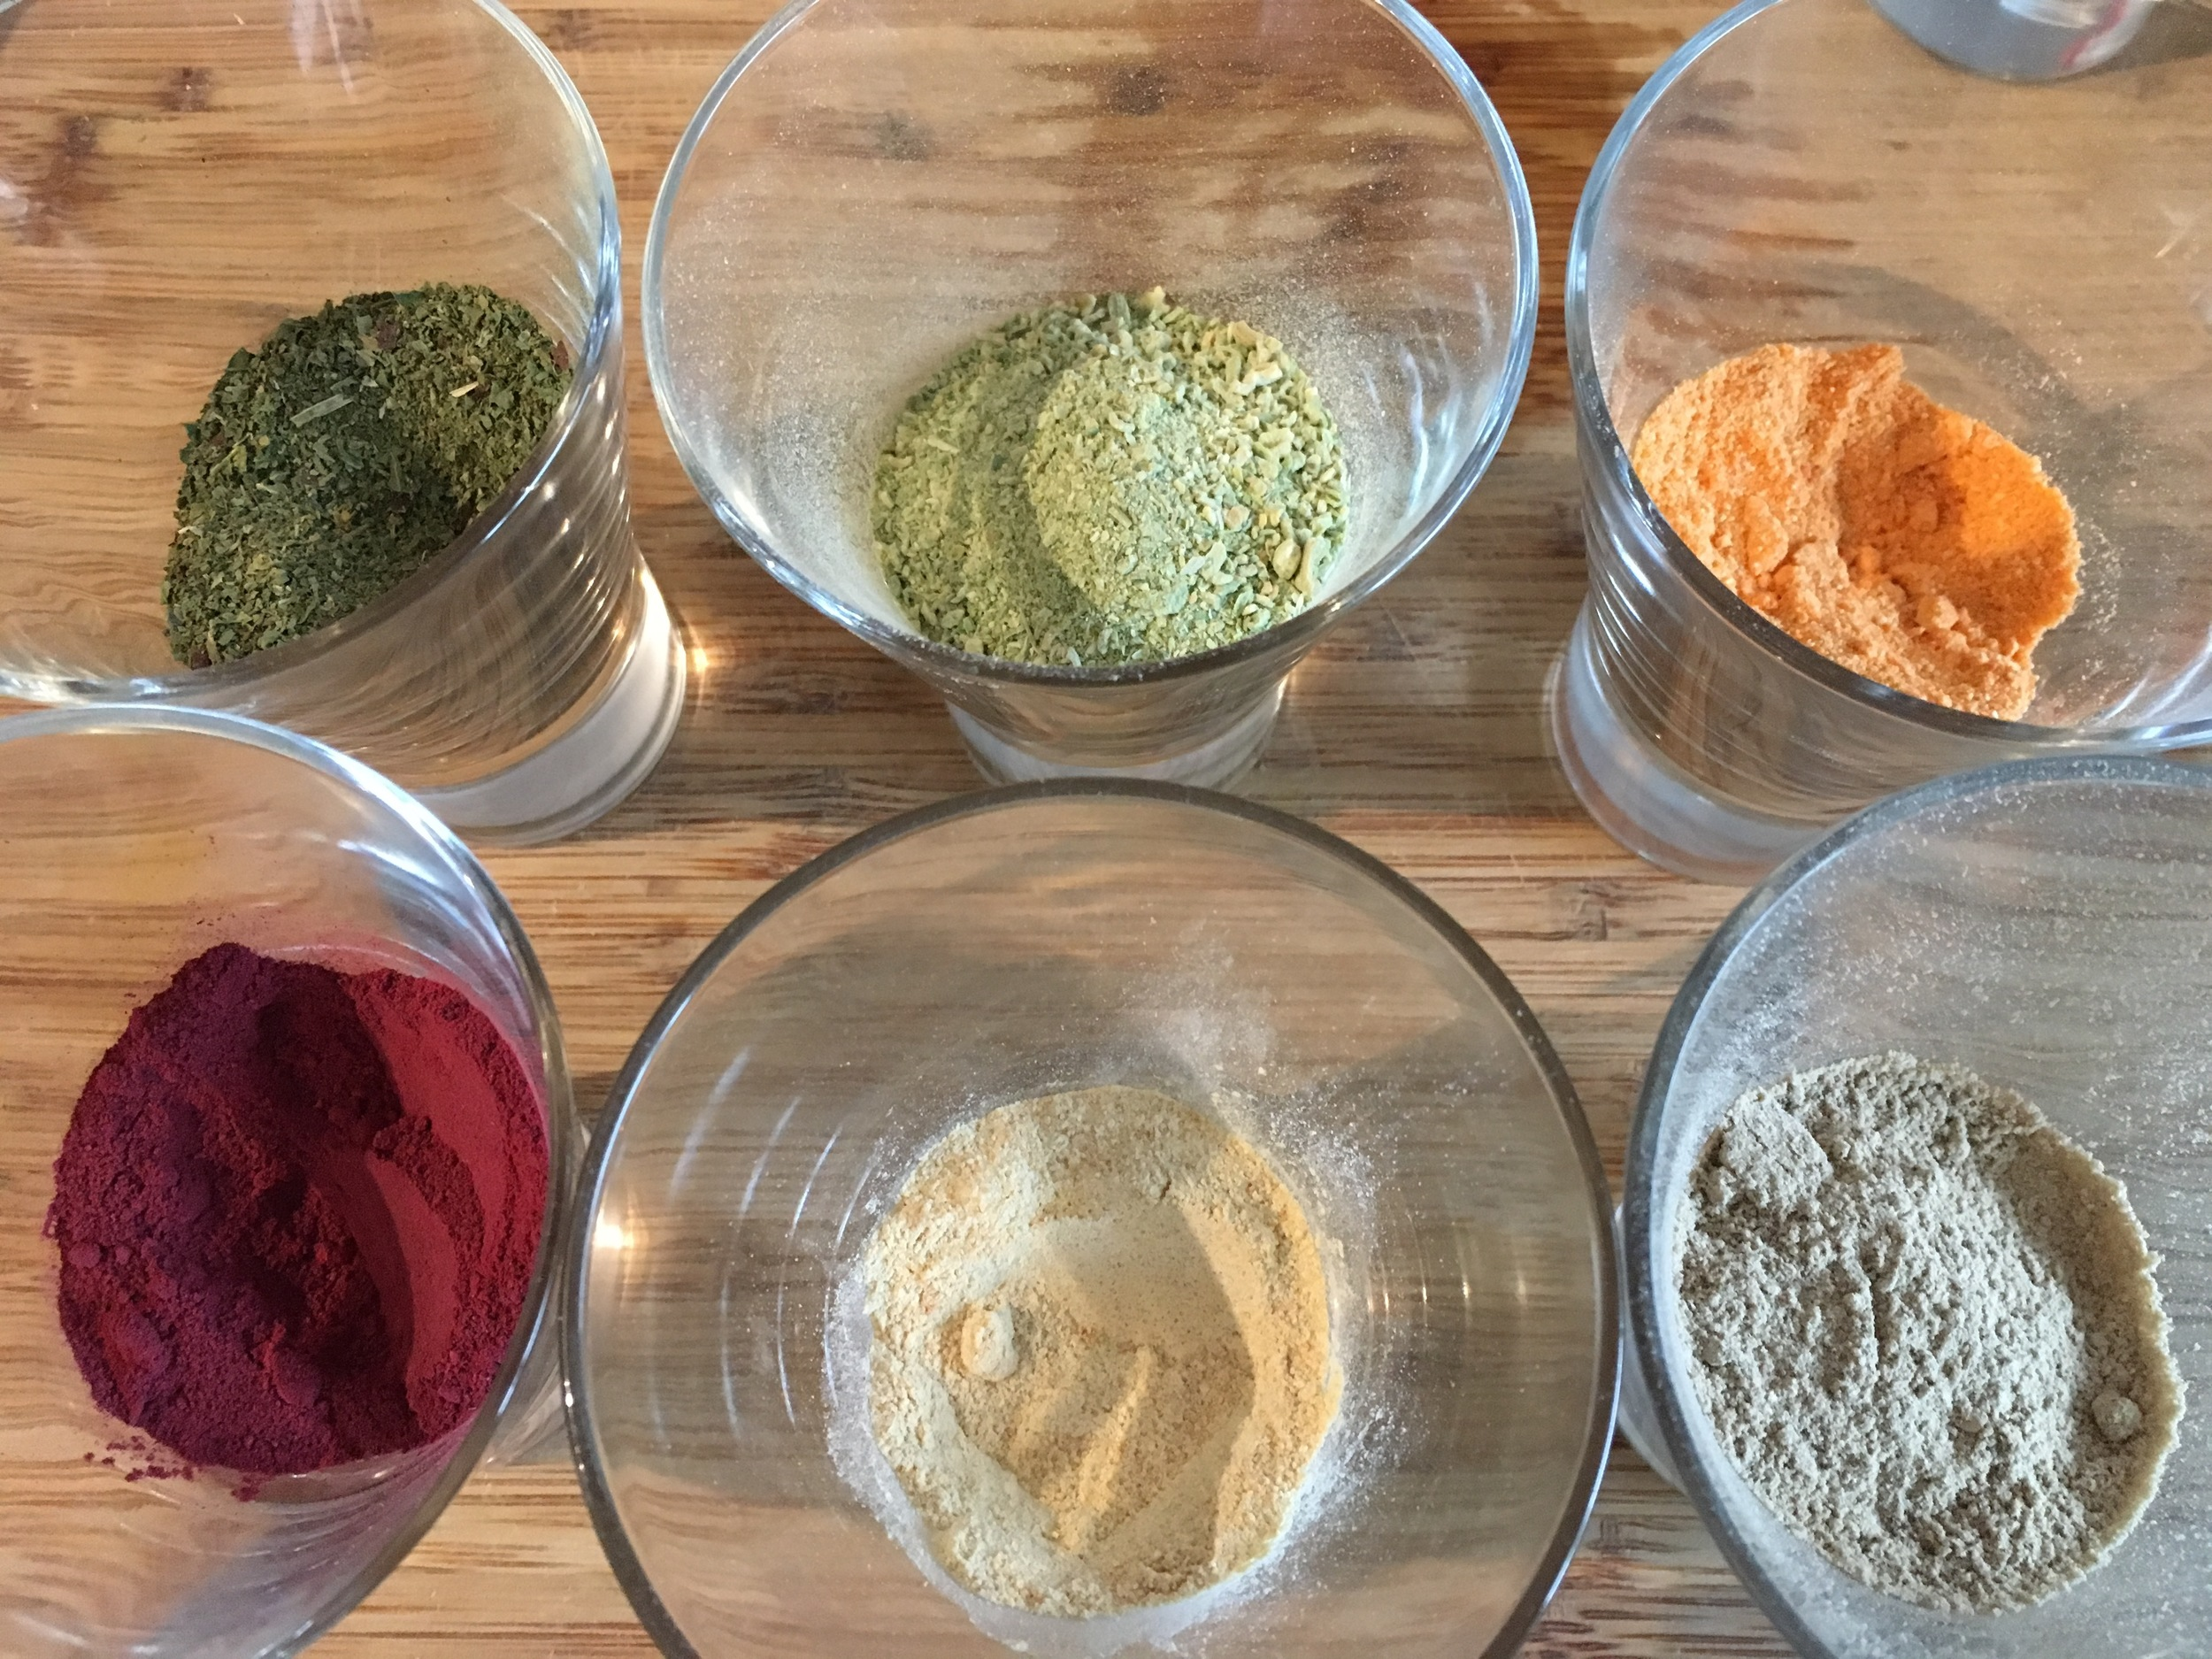 veggie powders;a colourful, sneaky way to get more vegetables into the family